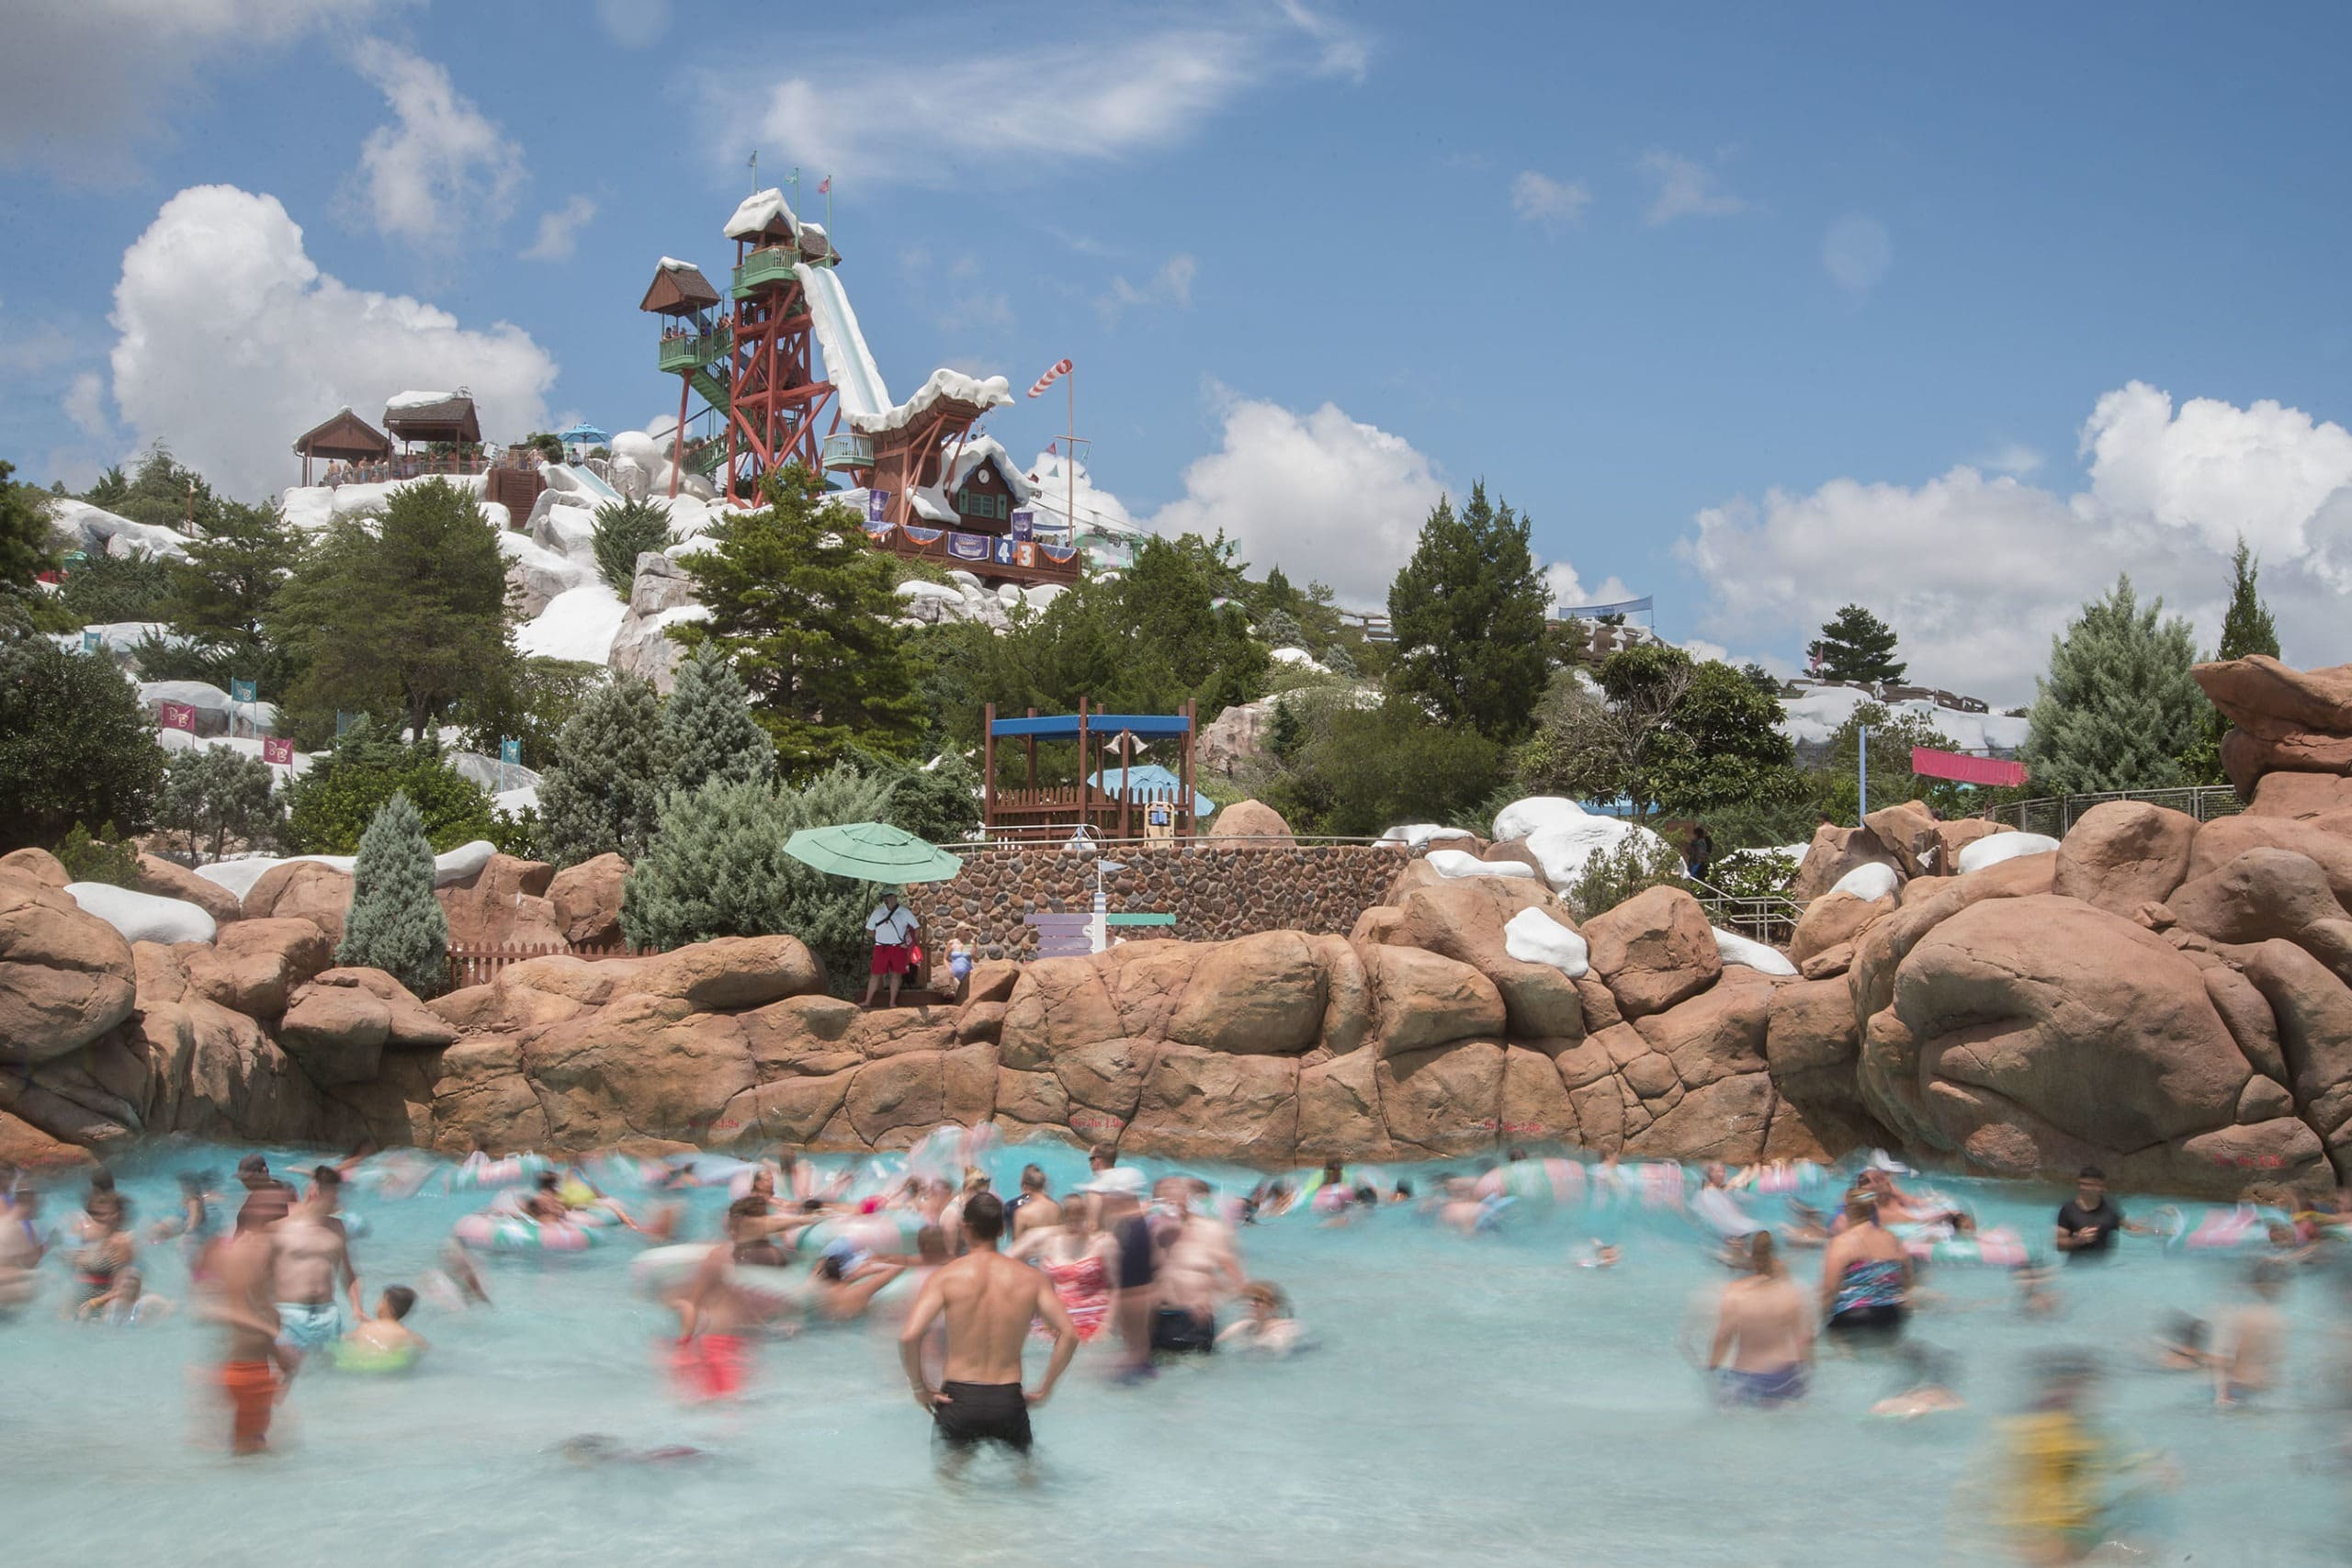 Guests splash around in the one-acre wave pool, Melt-Away Bay, at Disney's Blizzard Beach Water Park in Orlando, Florida.